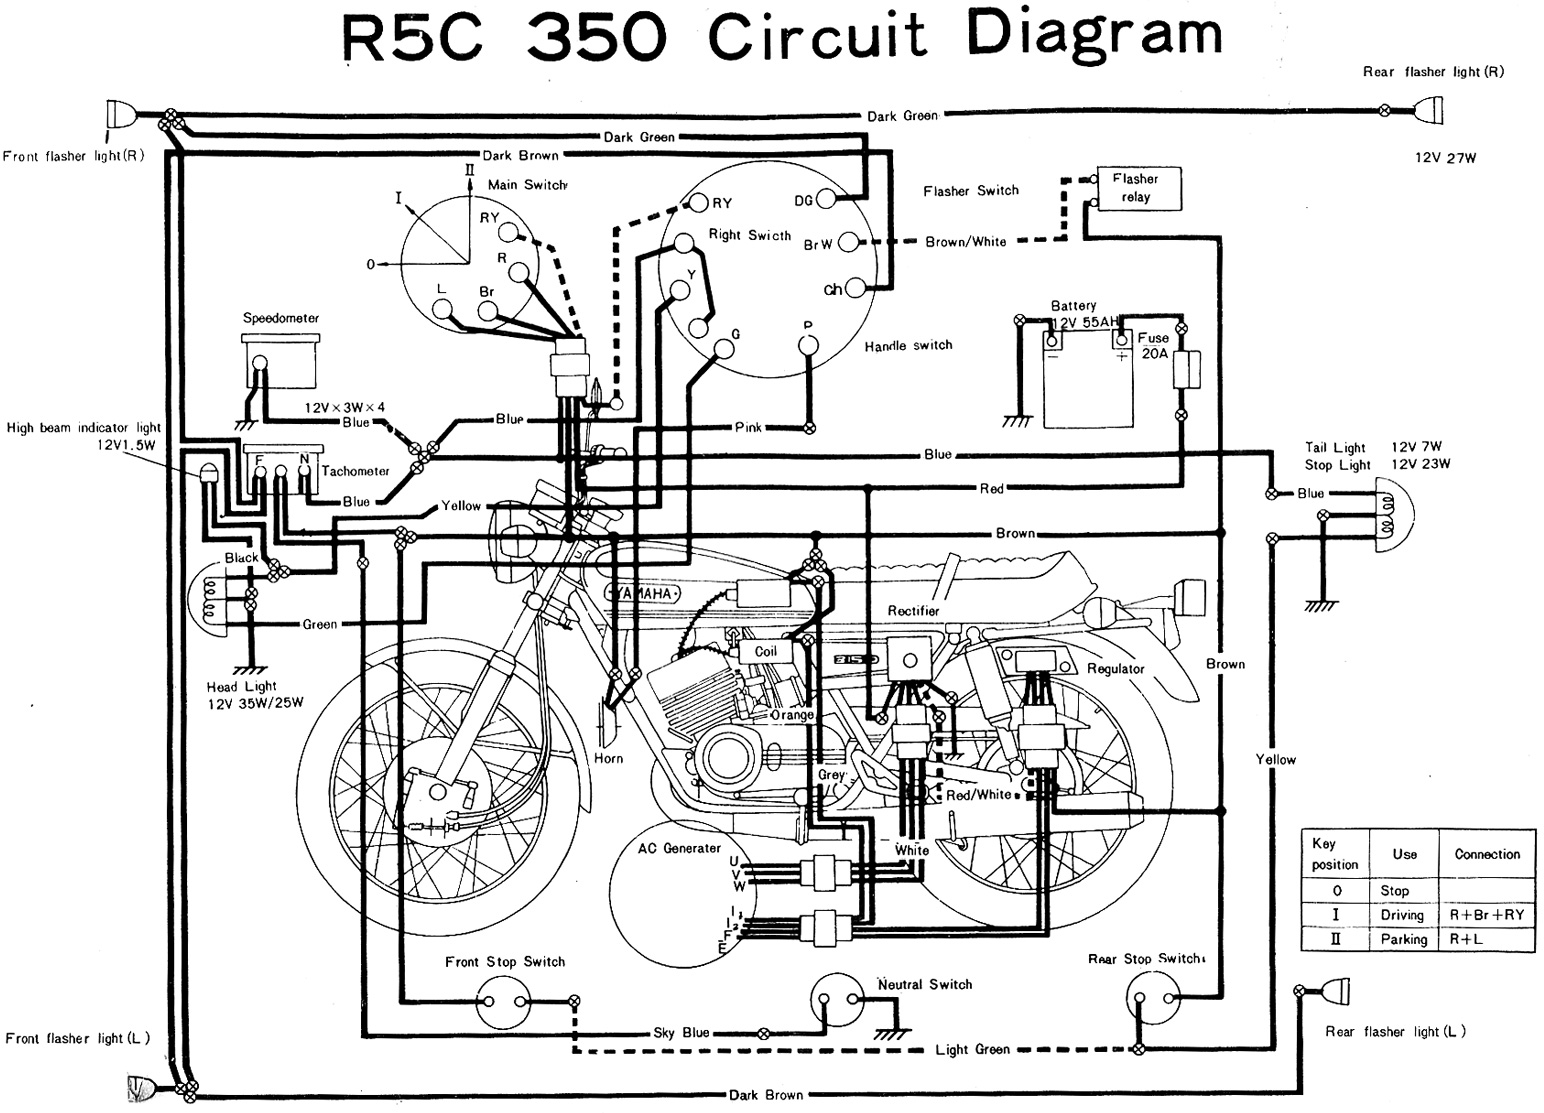 Yamaha RD350 R5C Wiring Diagram motorcycle wiring diagrams evan fell motorcycle worksevan fell Basic Motorcycle Diagram at cos-gaming.co